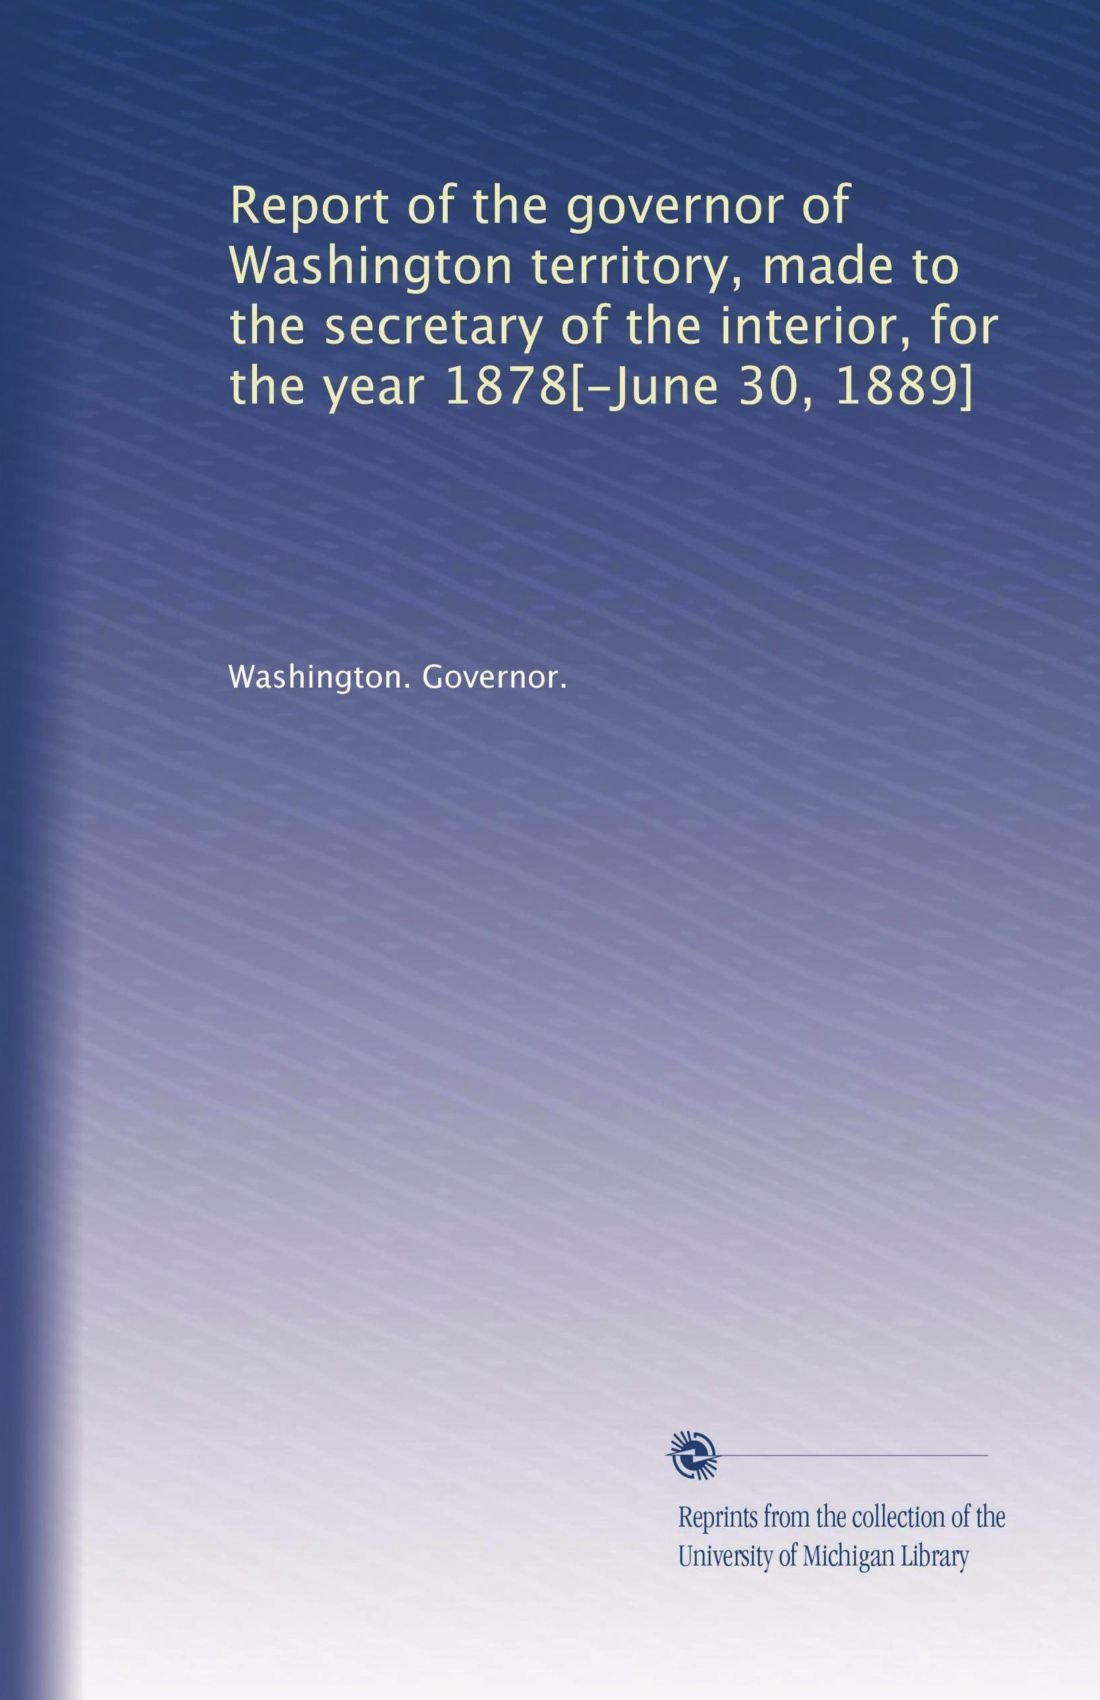 Report of the governor of Washington territory, made to the secretary of the interior, for the year 1878[-June 30, 1889] pdf